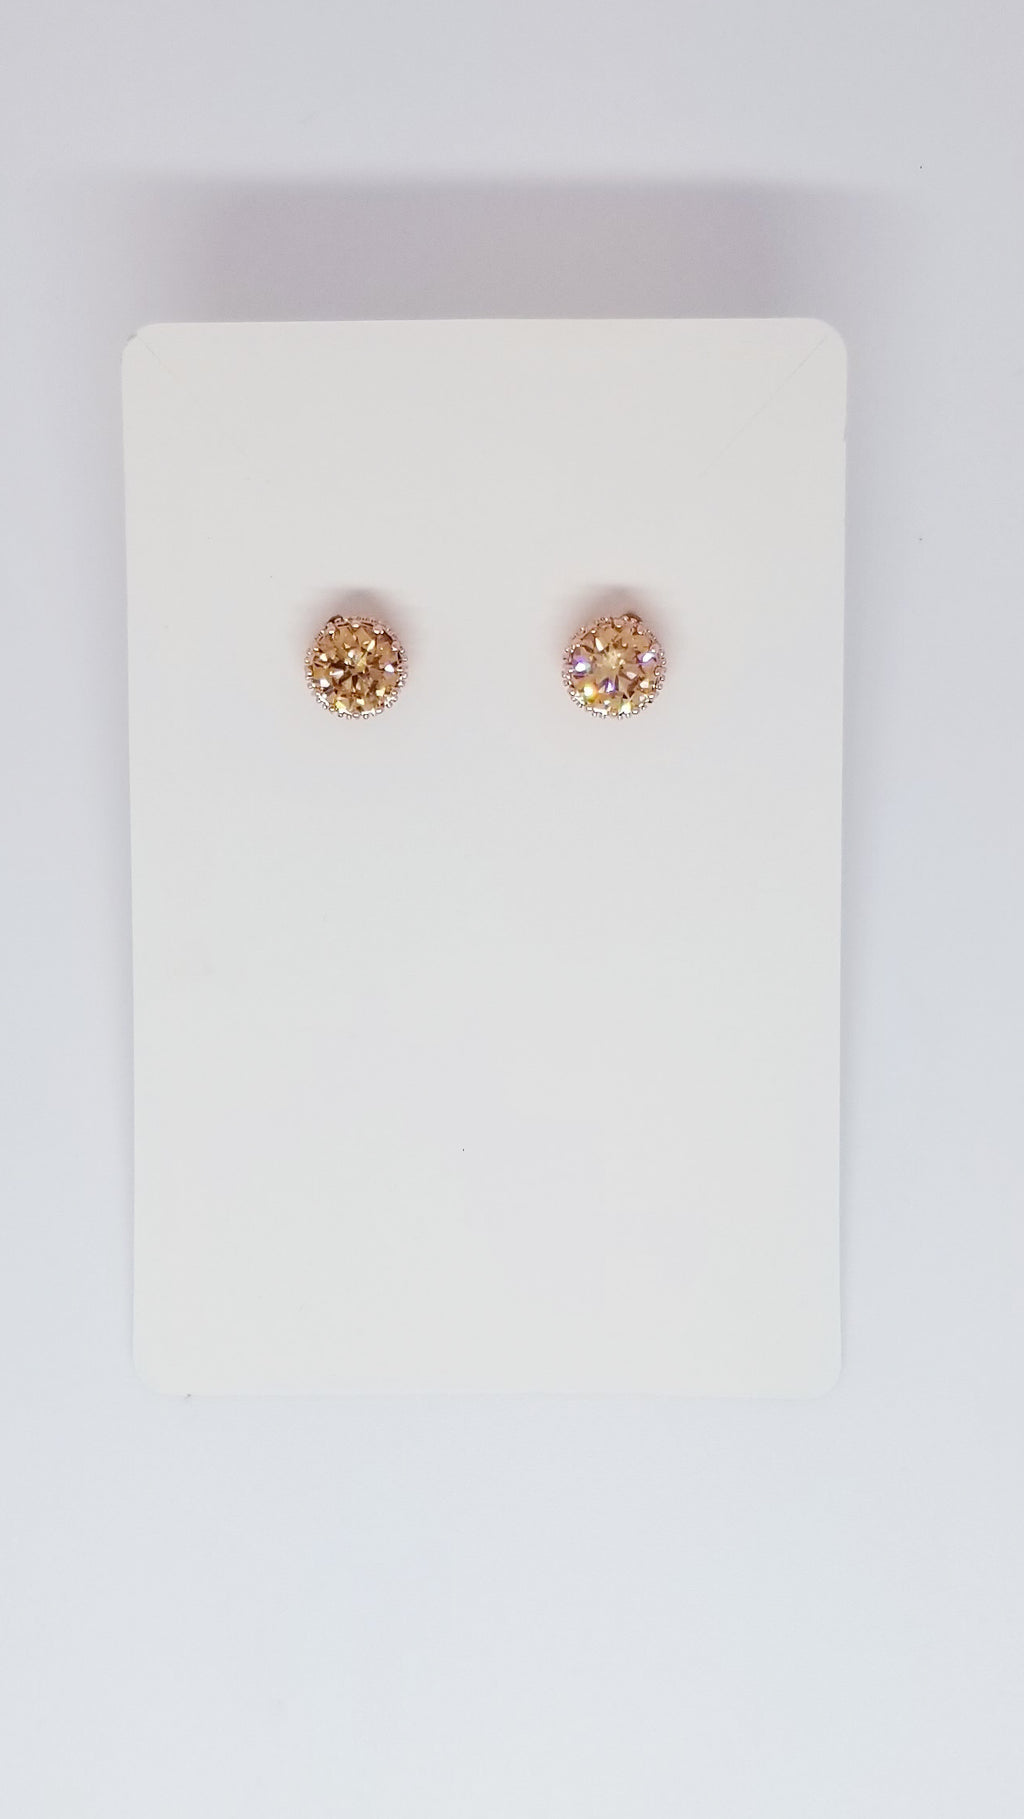 Stud Earrings - Gold Stone - OWN YOUR ELEGANCE